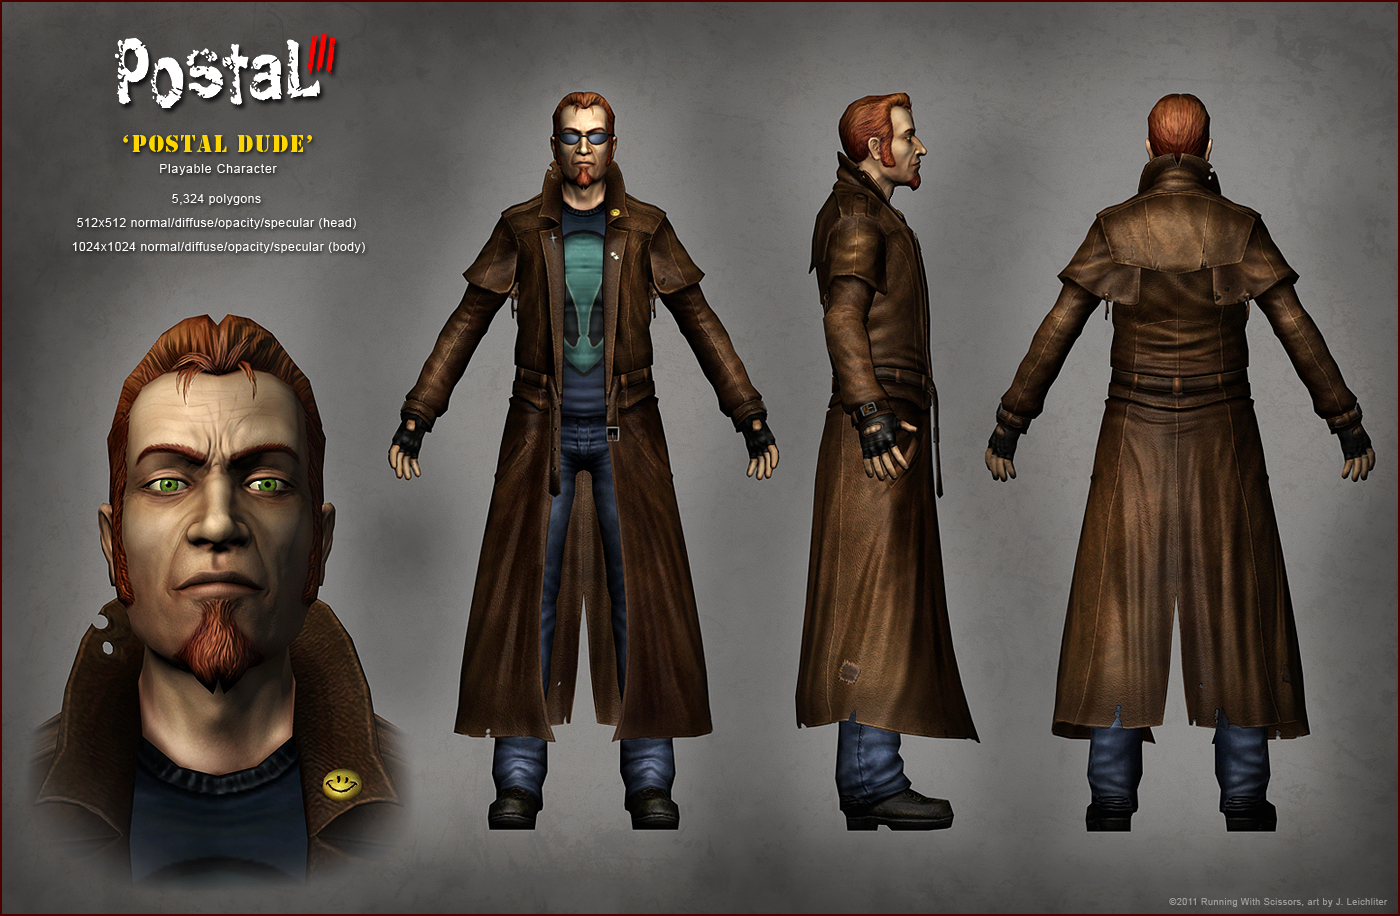 Postal 3 Postal Dude By Jleichliter On Deviantart